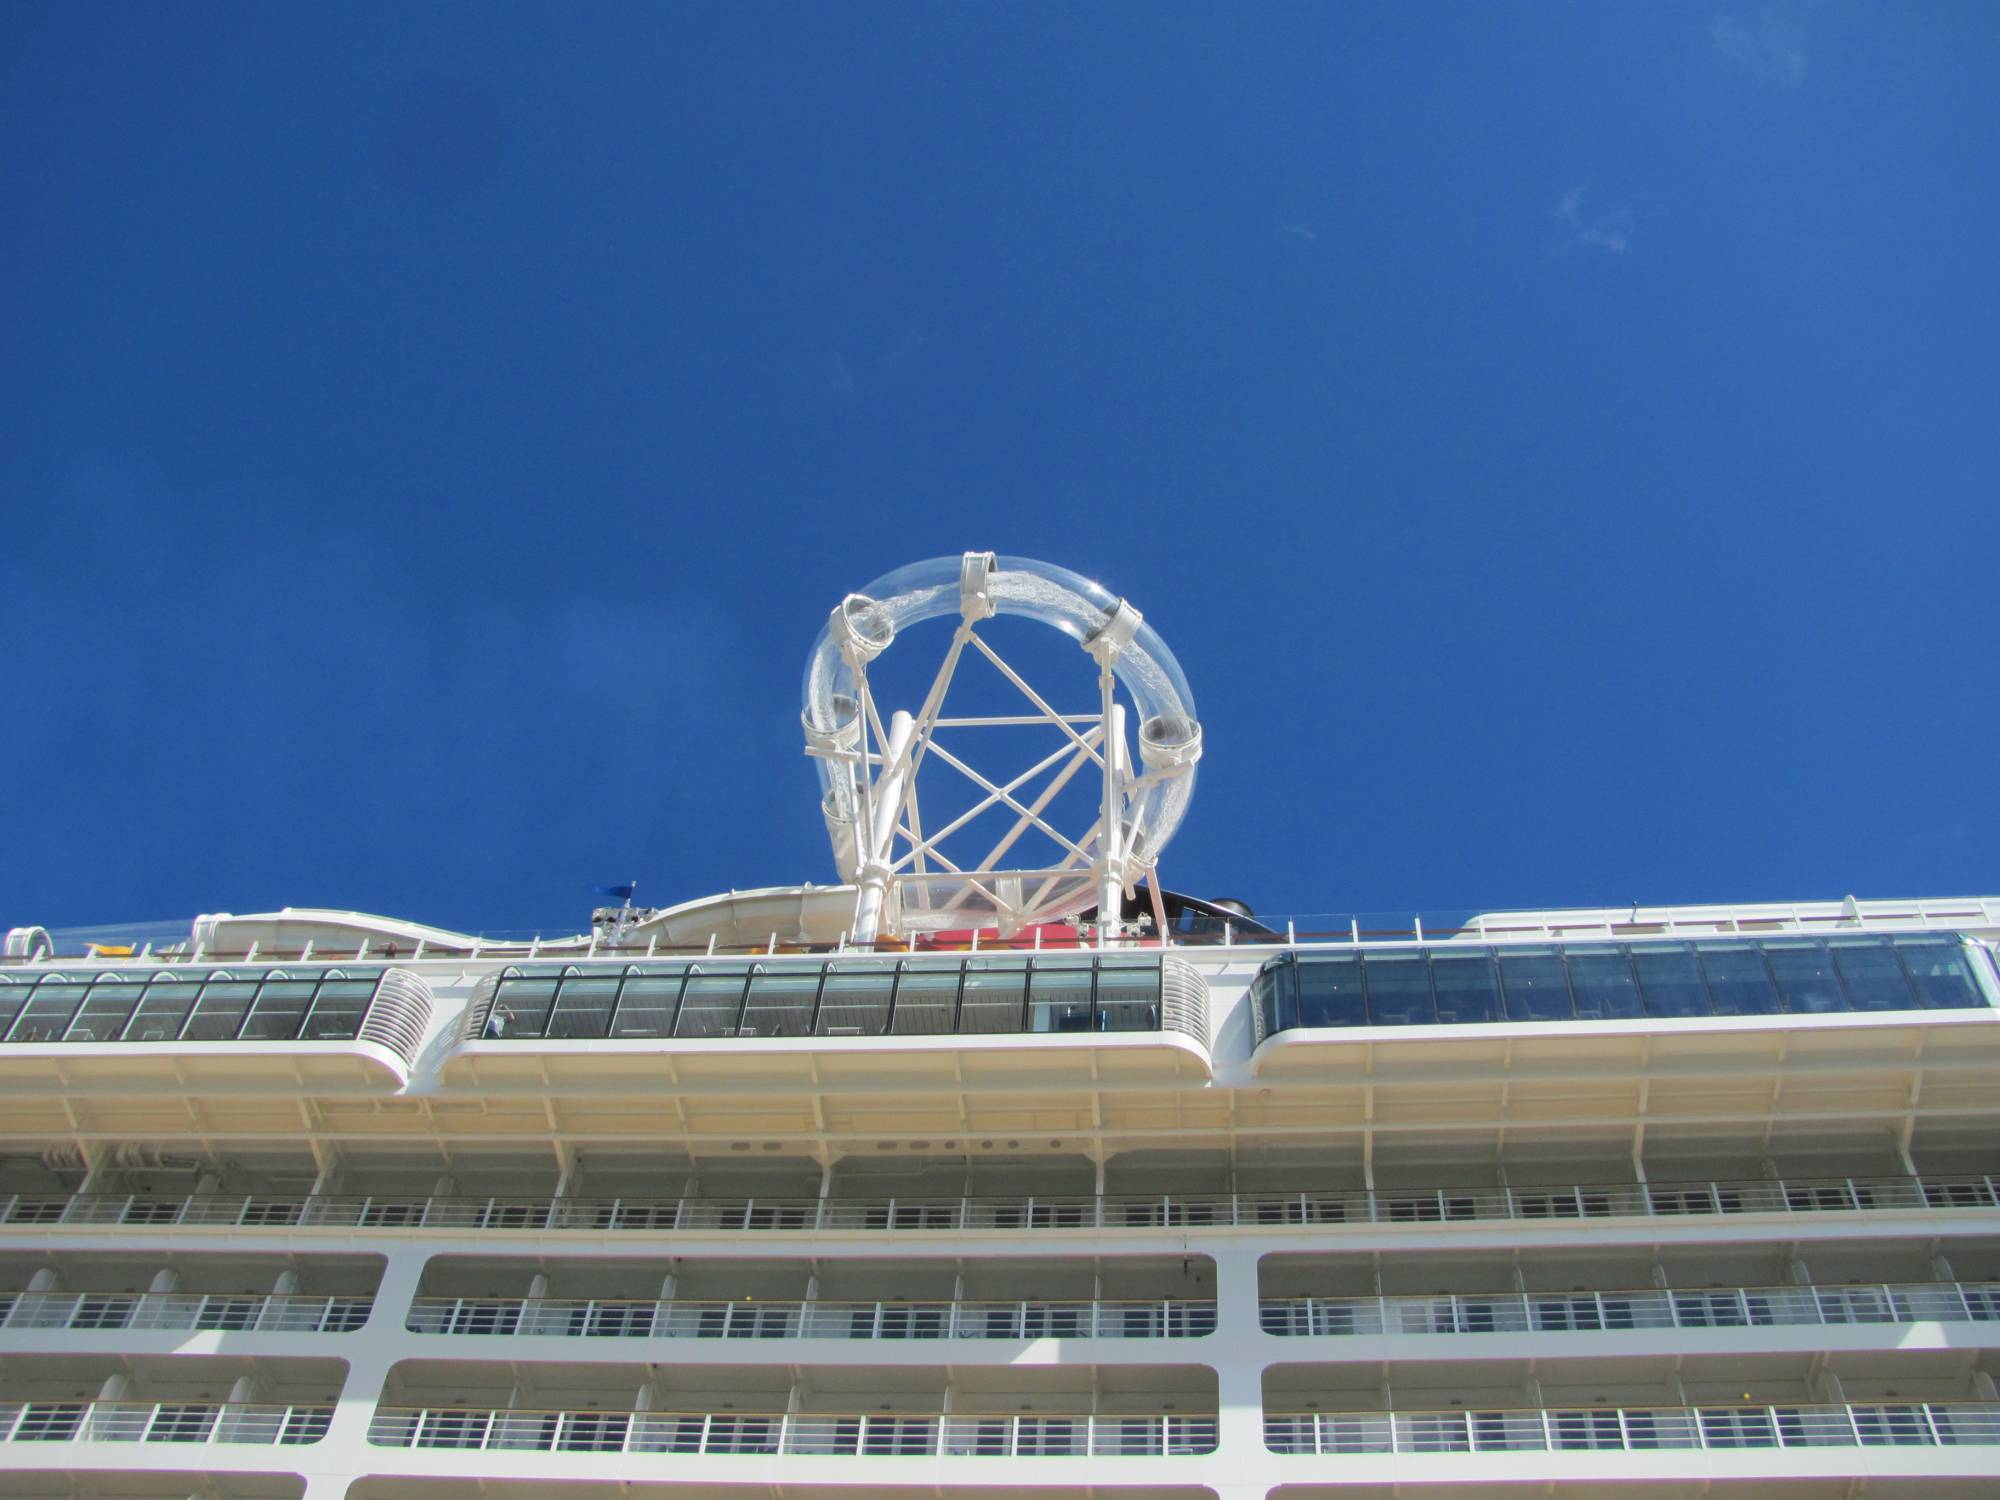 Disney Dream AquaDuck